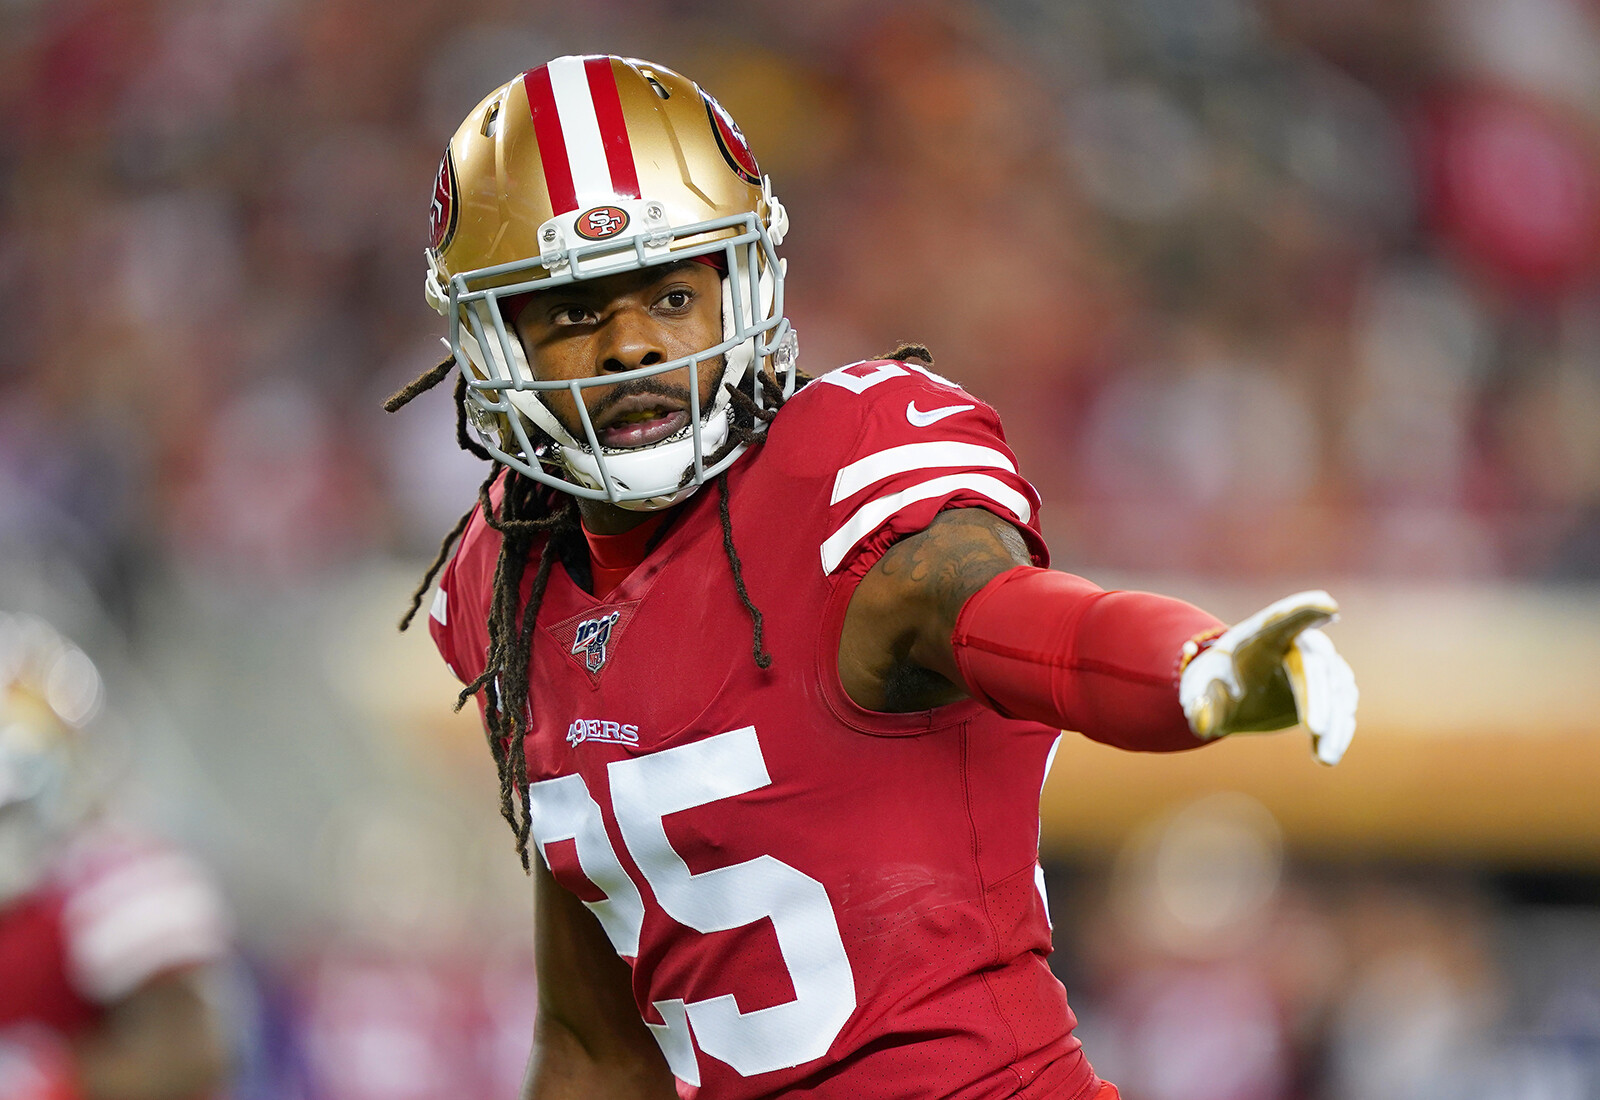 Richard Sherman says he is remorseful for actions that led to his arrest, pleads not guilty to misdemeanors